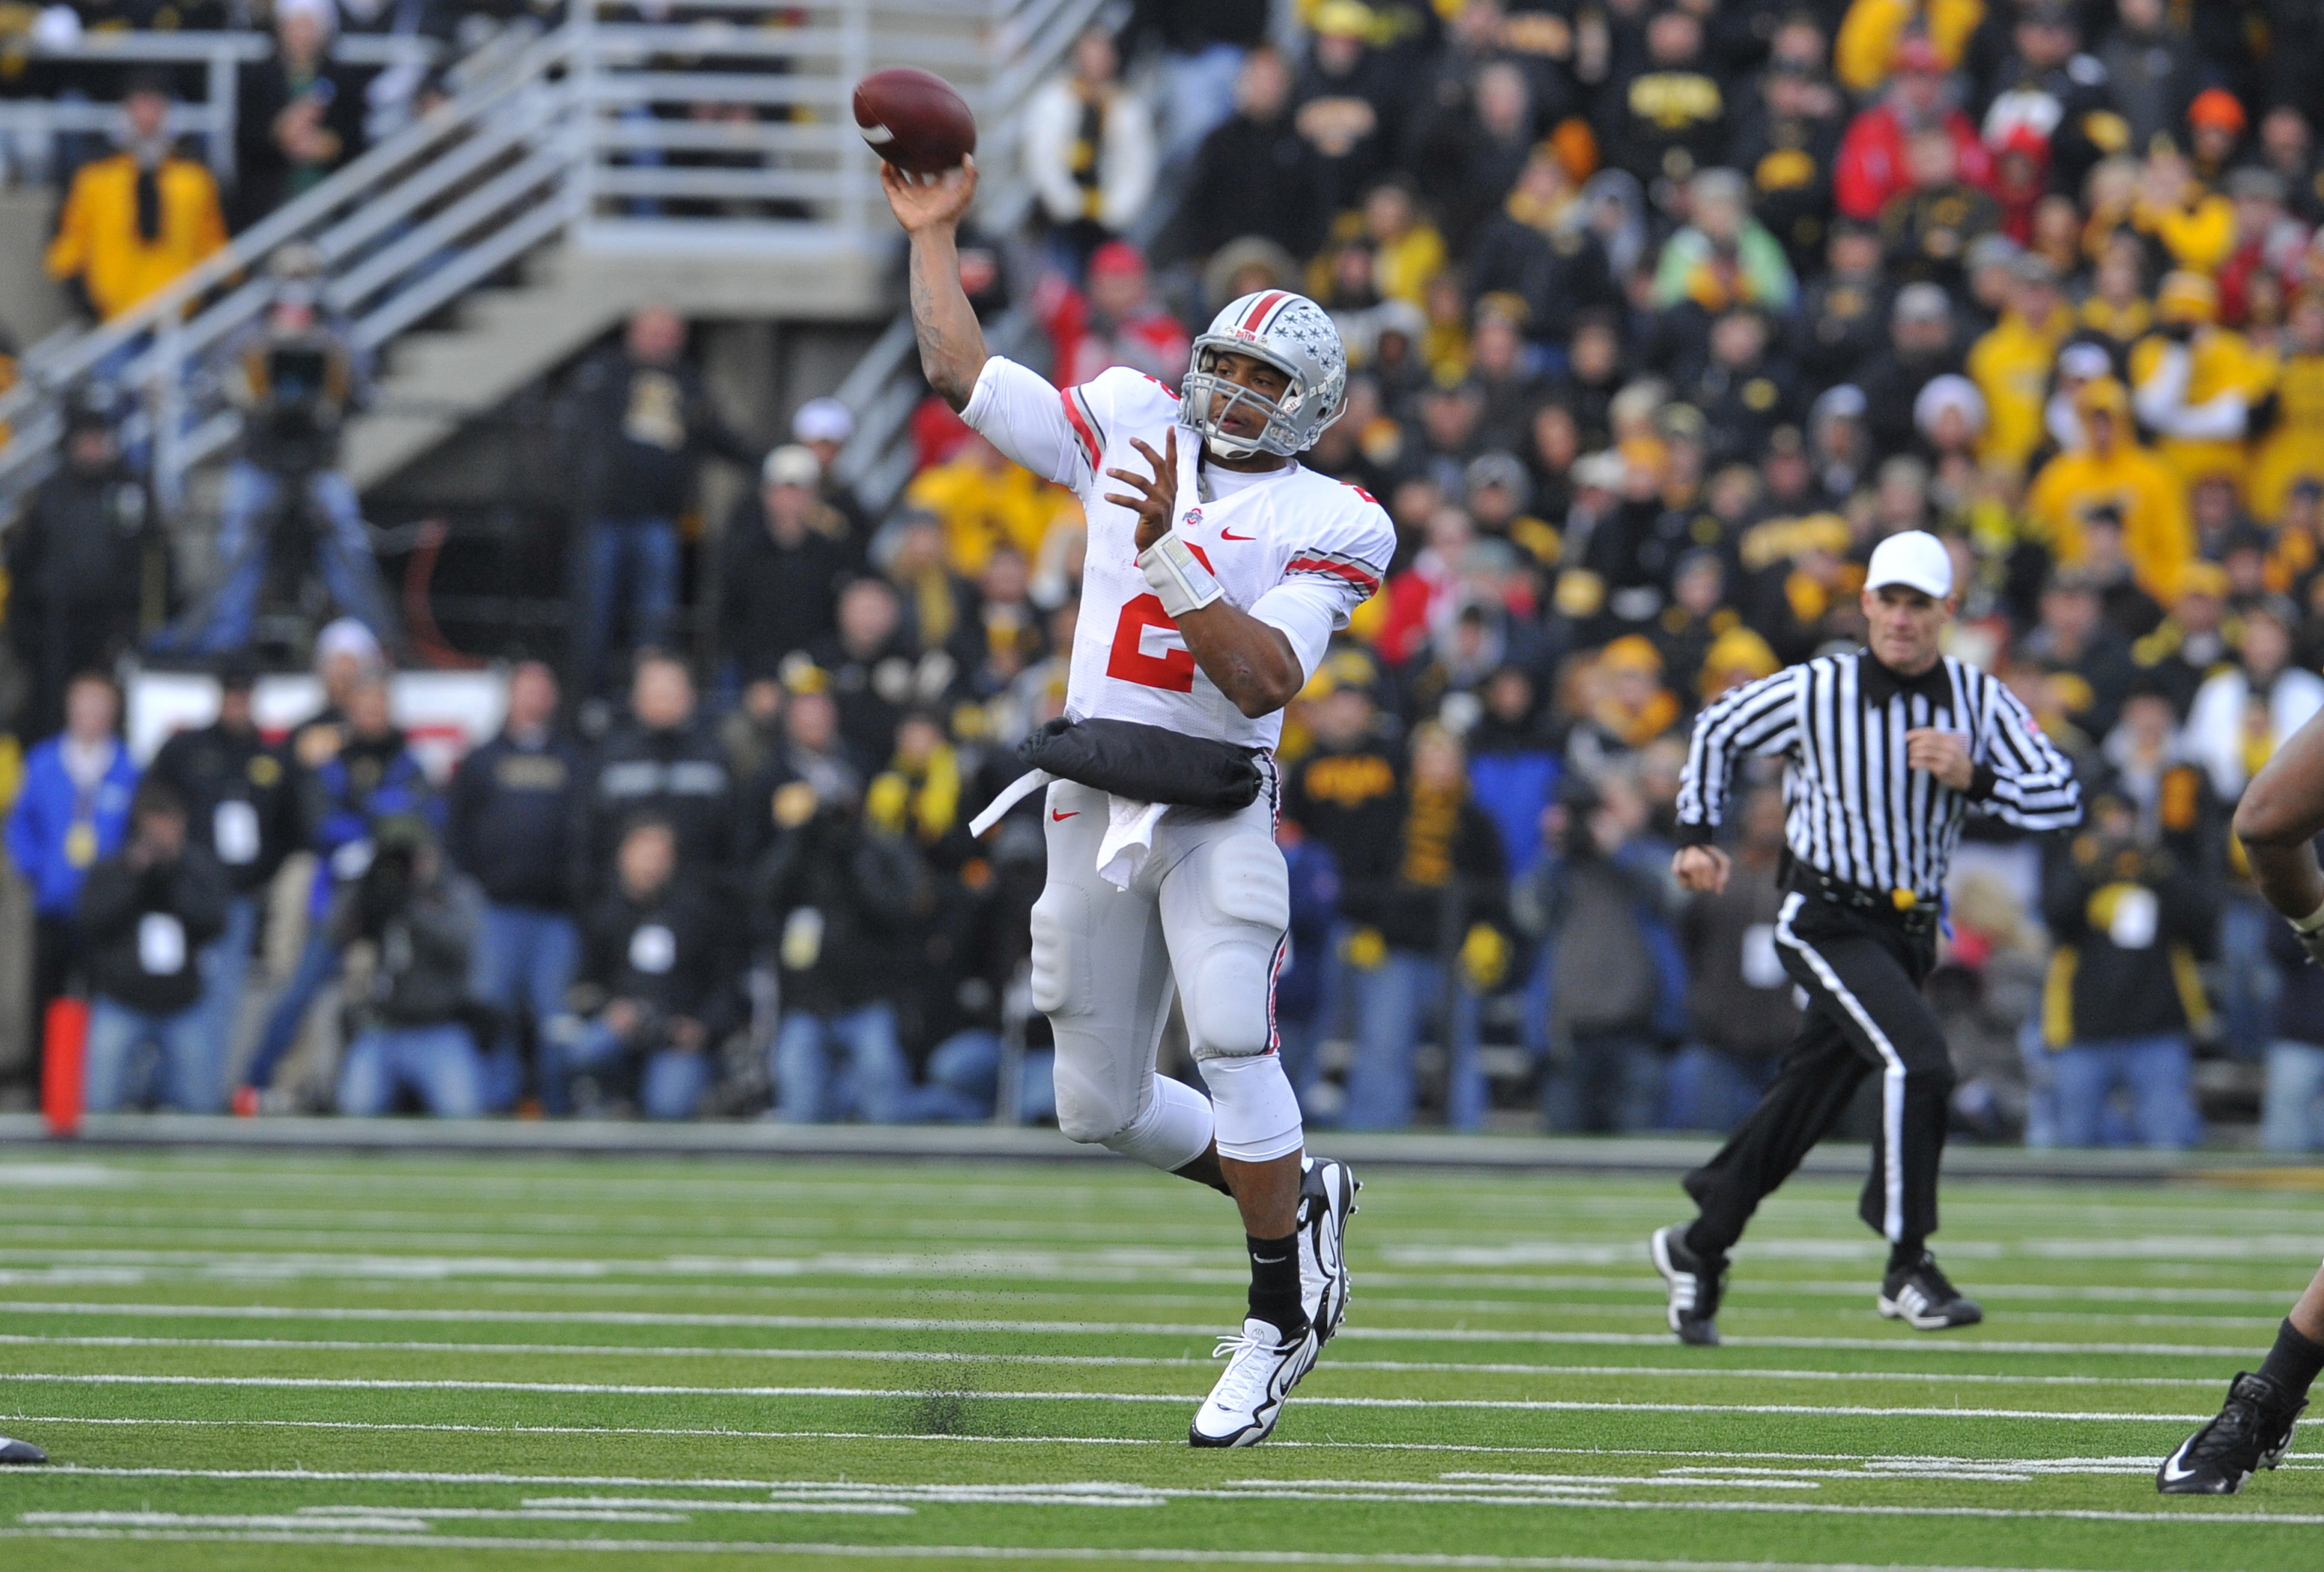 IOWA CITY, IA - NOVEMBER 20:  Quarterback Terrelle Pryor #2 of the Ohio State Buckeyes throws under pressure from University of Iowa Hawkeyes defenders during the second half of play at Kinnick Stadium on November 20, 2010 in Iowa City, Iowa. Ohio State w